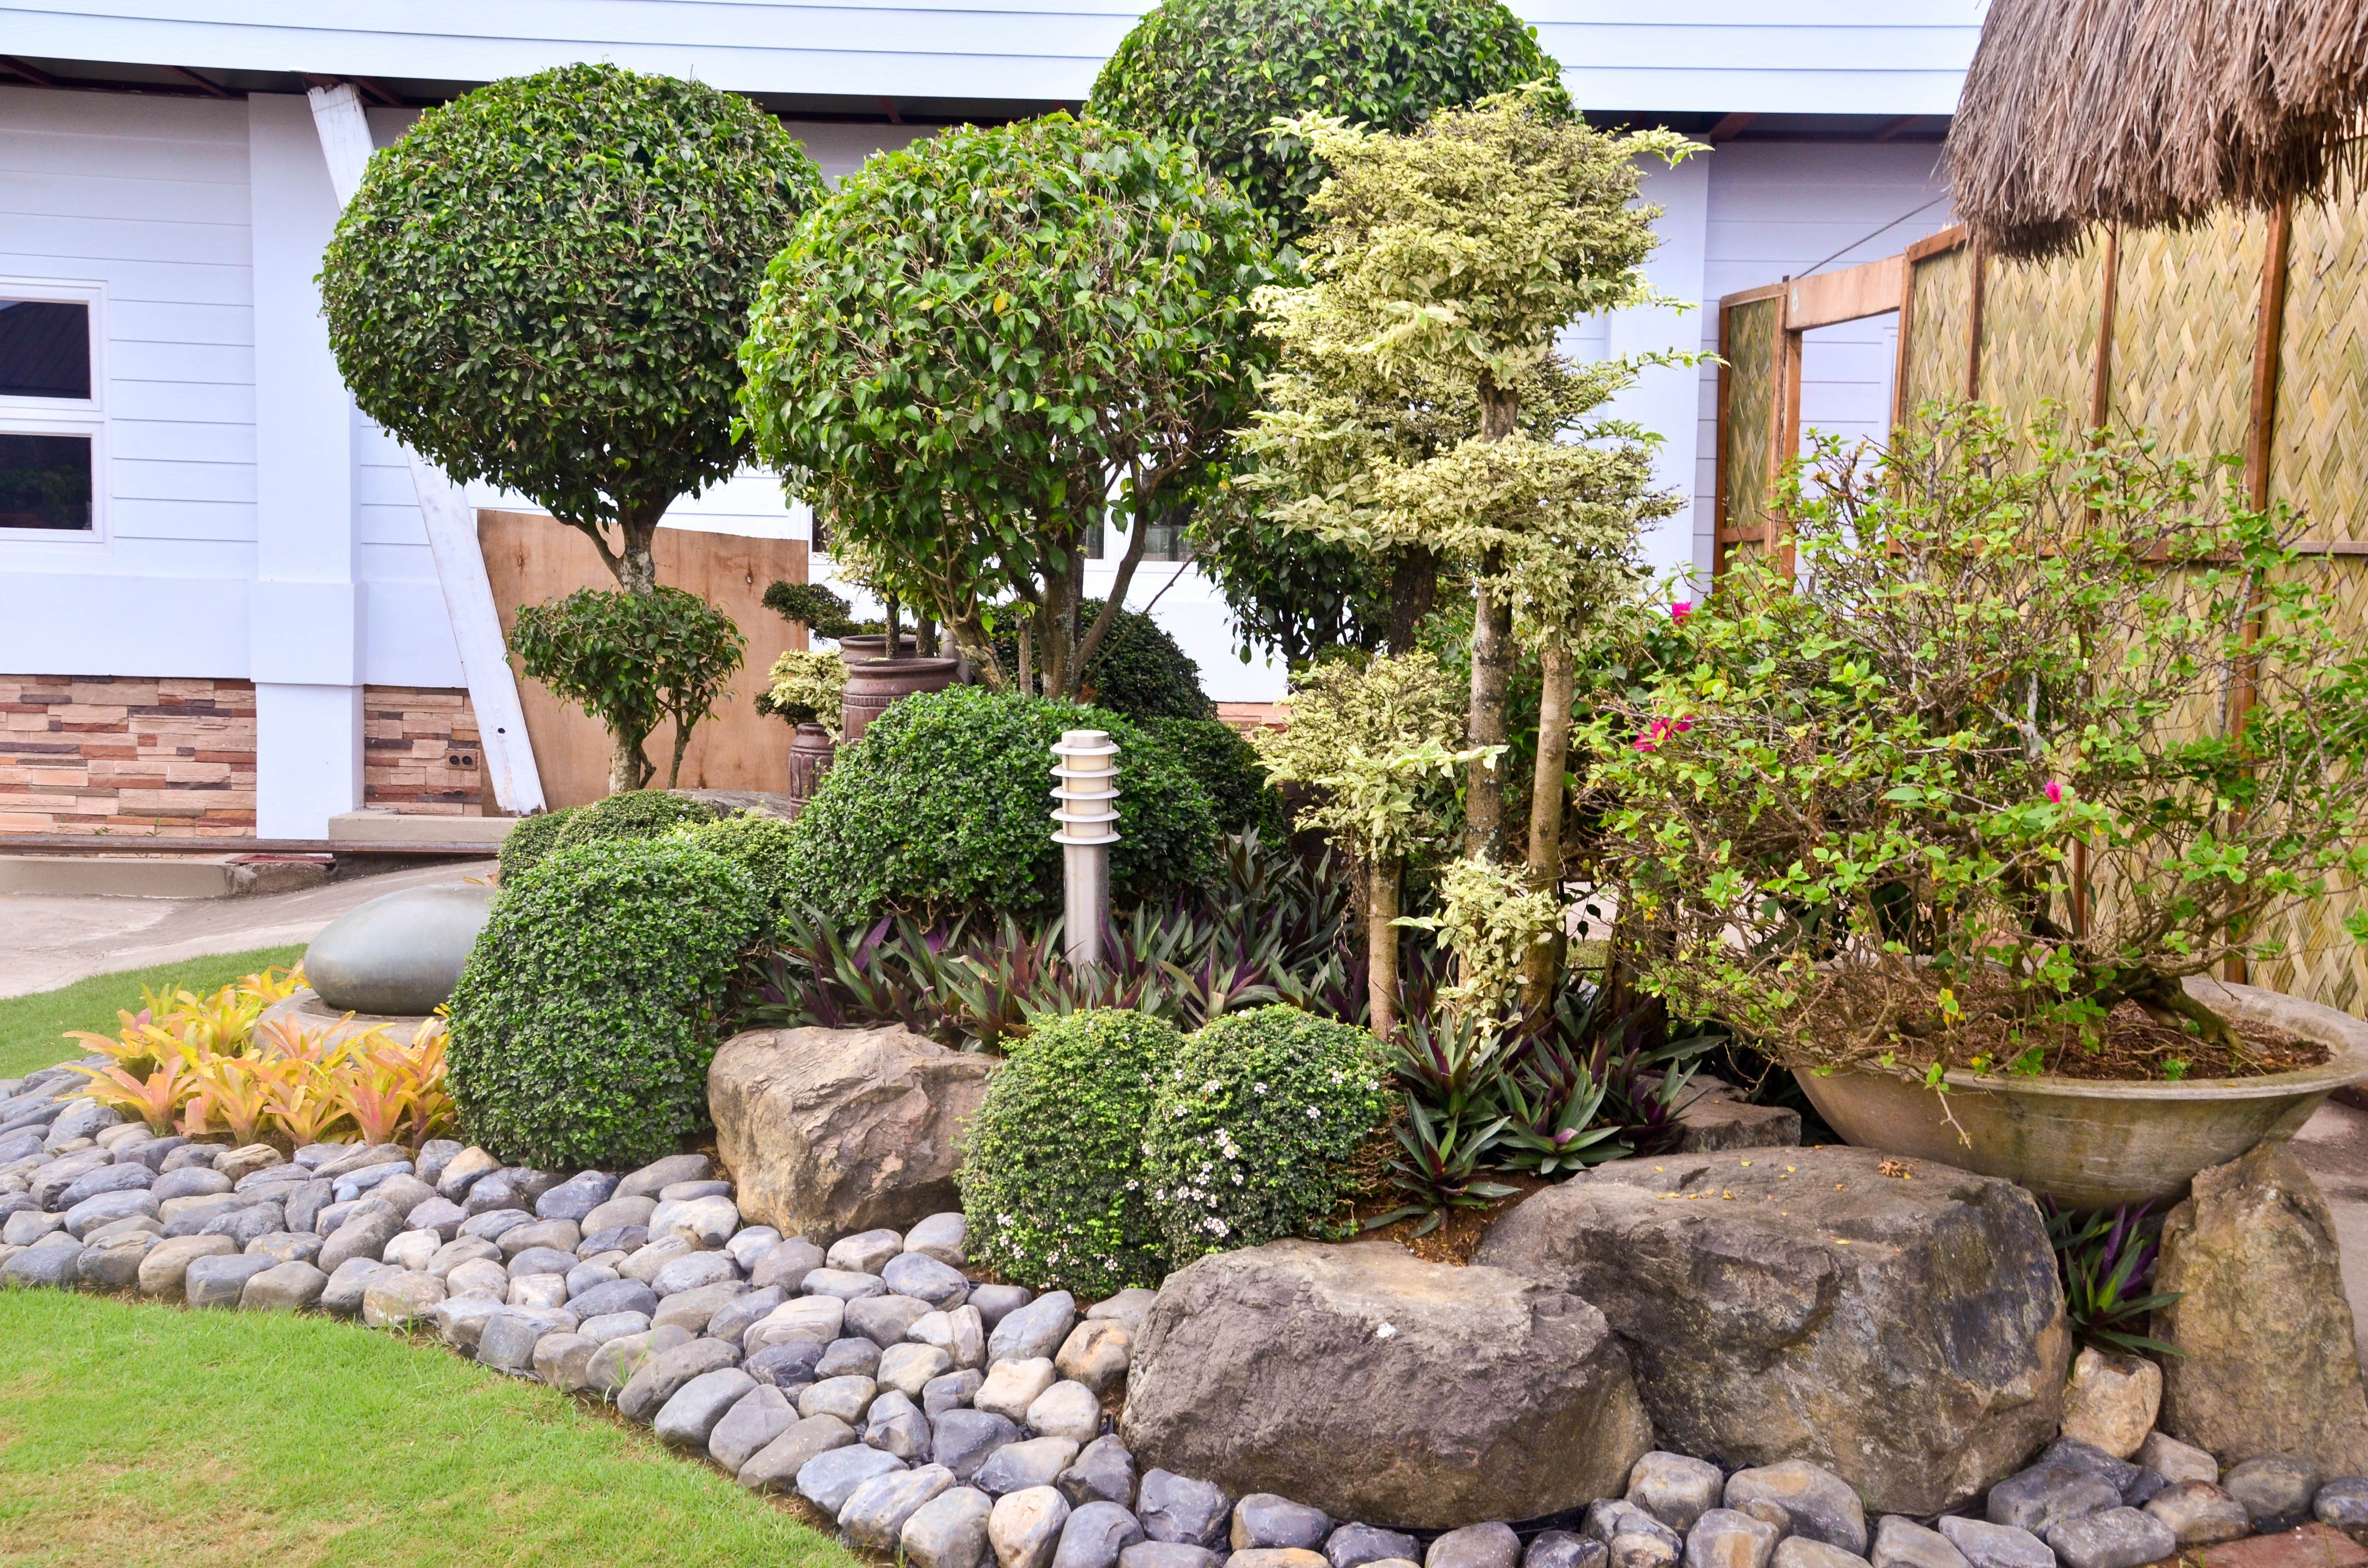 landscaping rocks how to landscape with rocks: 6 steps (with pictures) - wikihow UXFQYZK